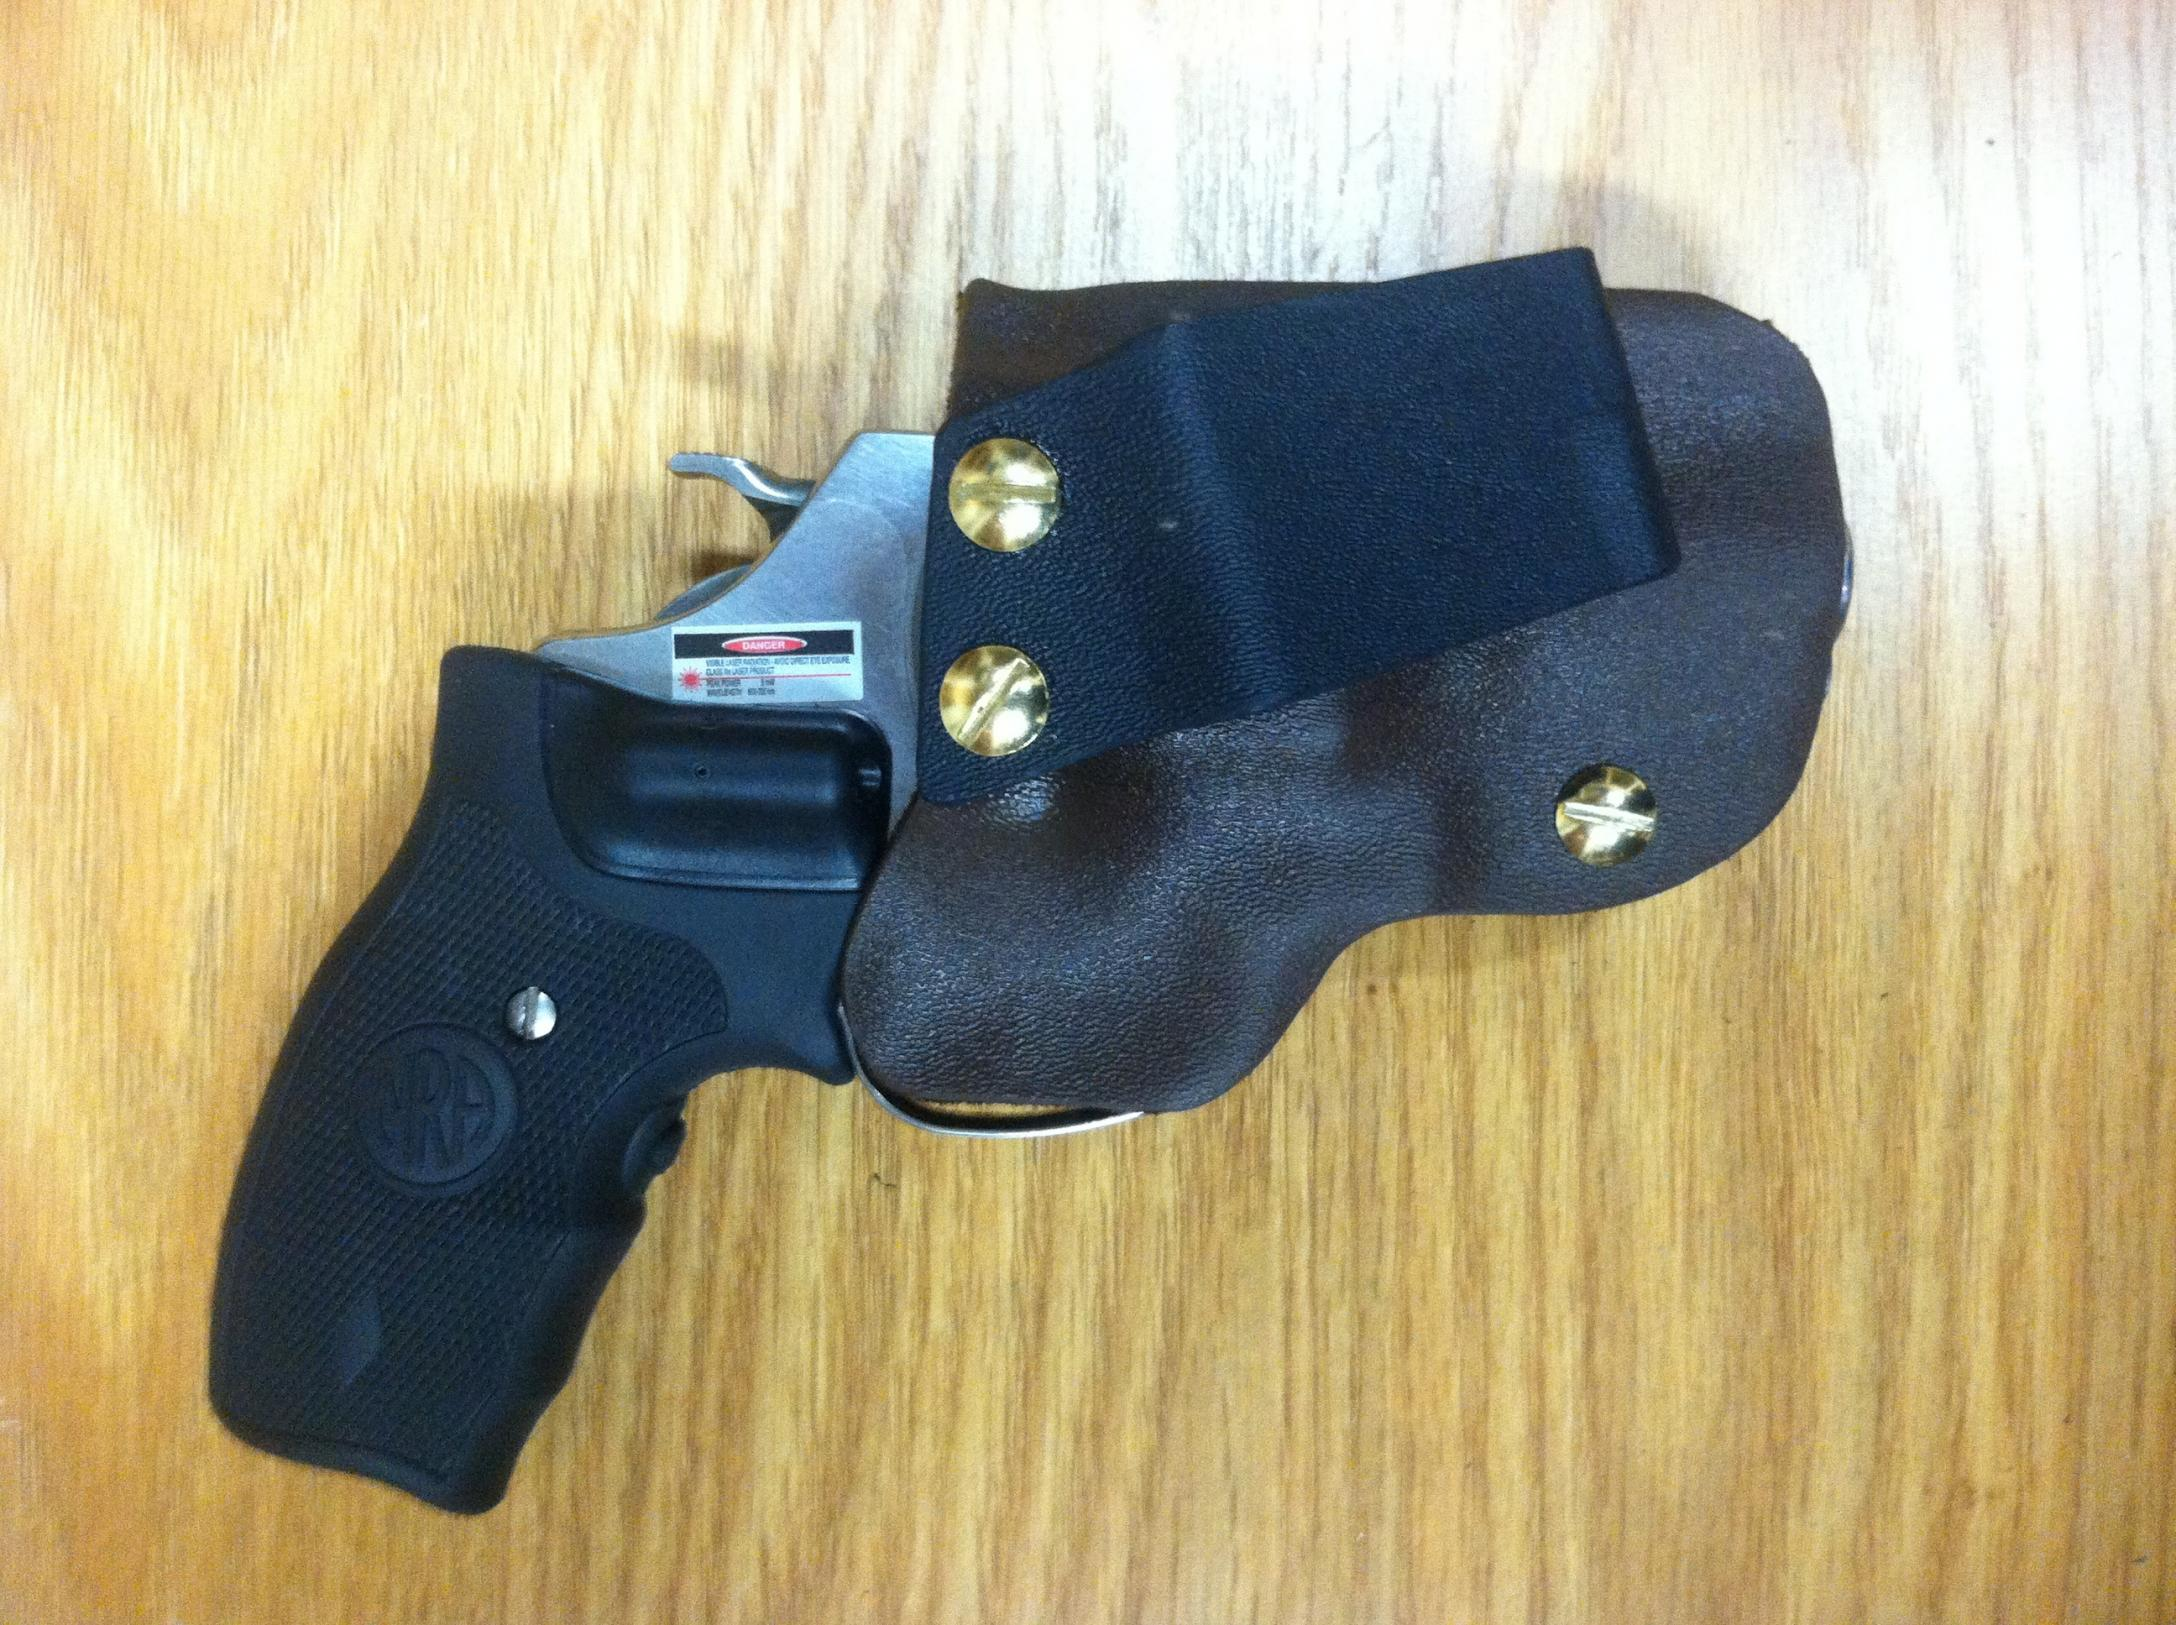 Smith & Wesson Model 60-image.jpg